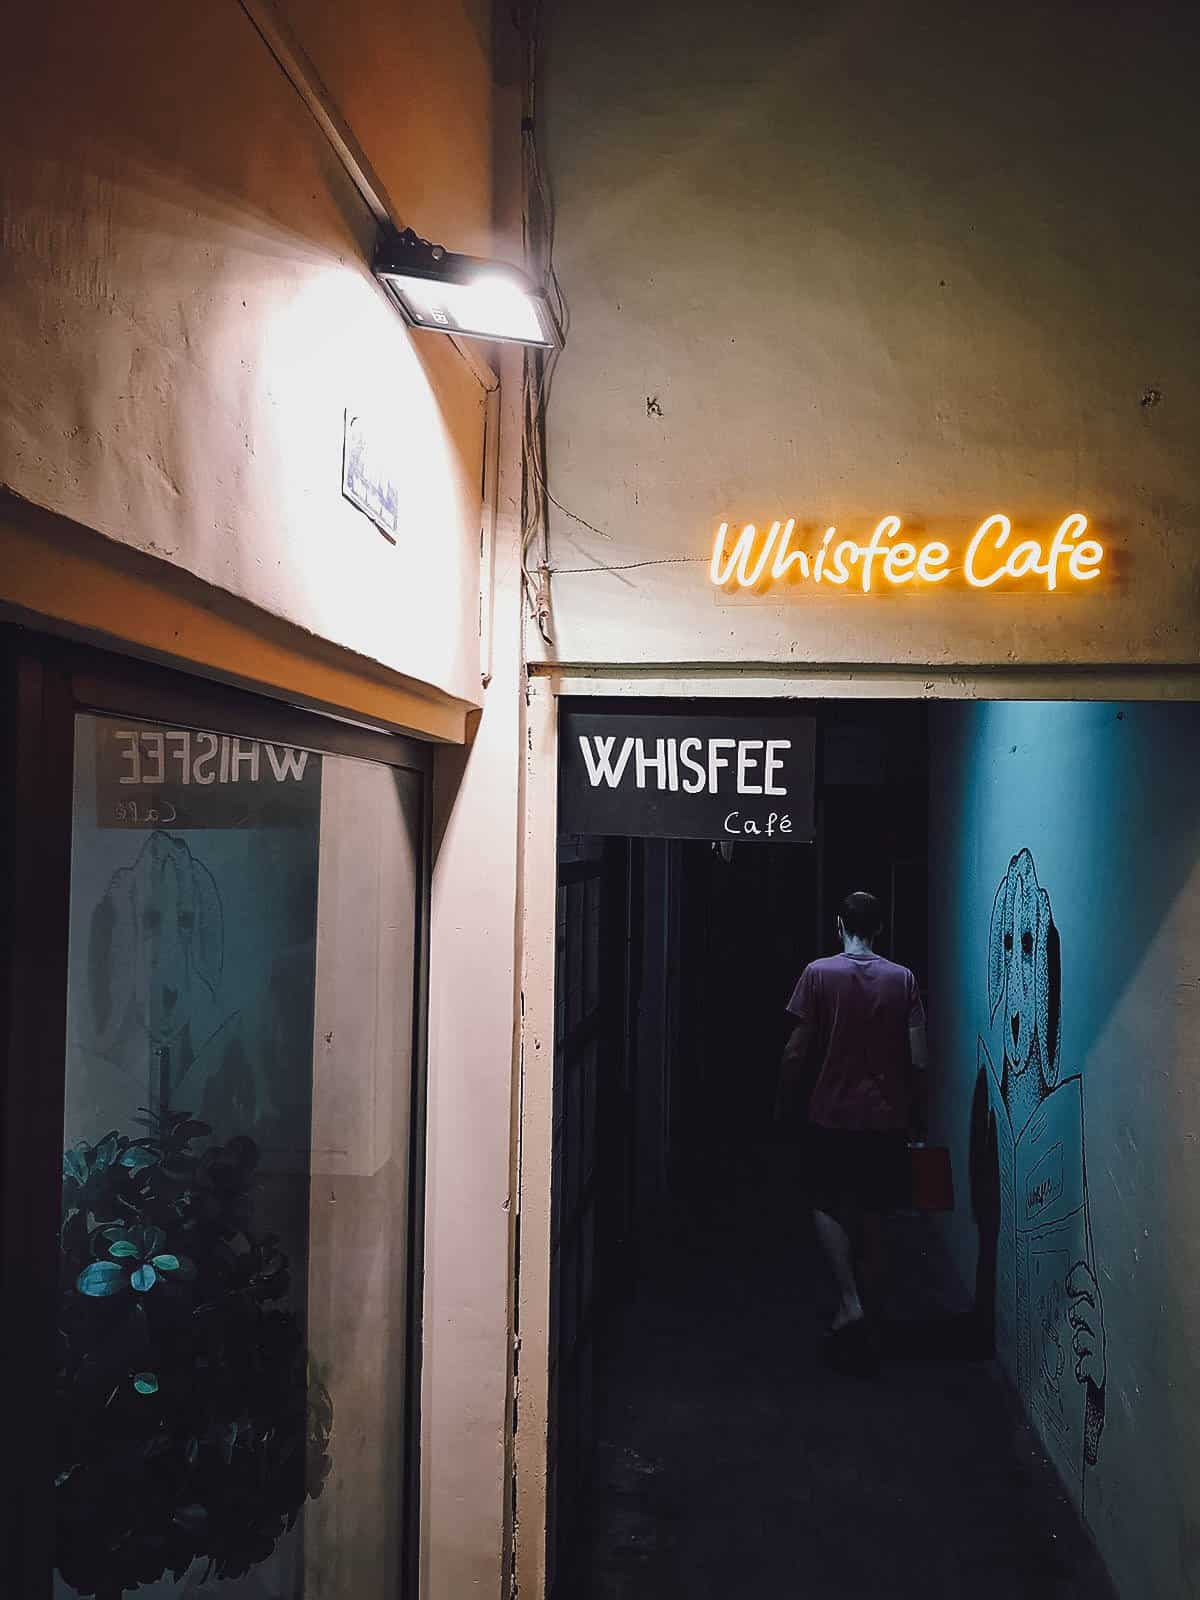 Whisfee Cafe sign